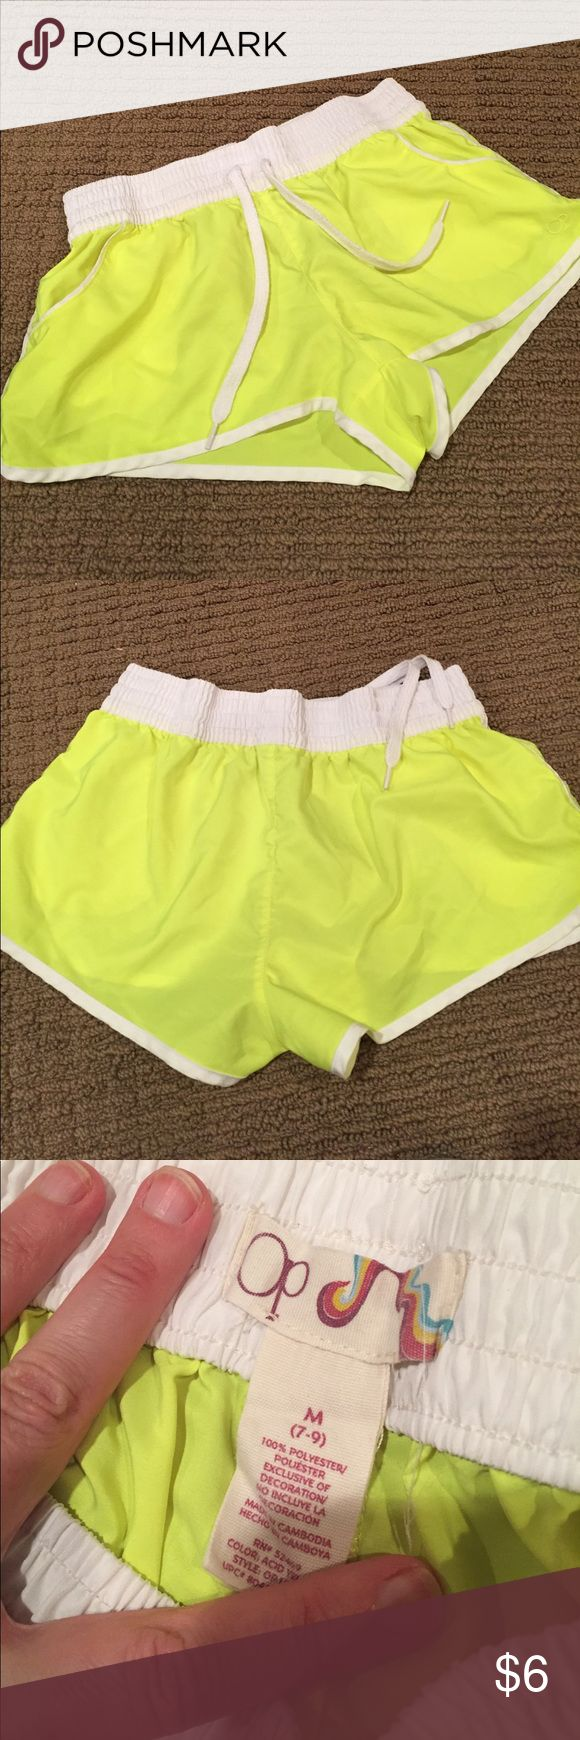 Neon yellow running shorts! Light weight, great for running or as beach shorts!!!! Neon yellow looks great with a tan! Op Shorts